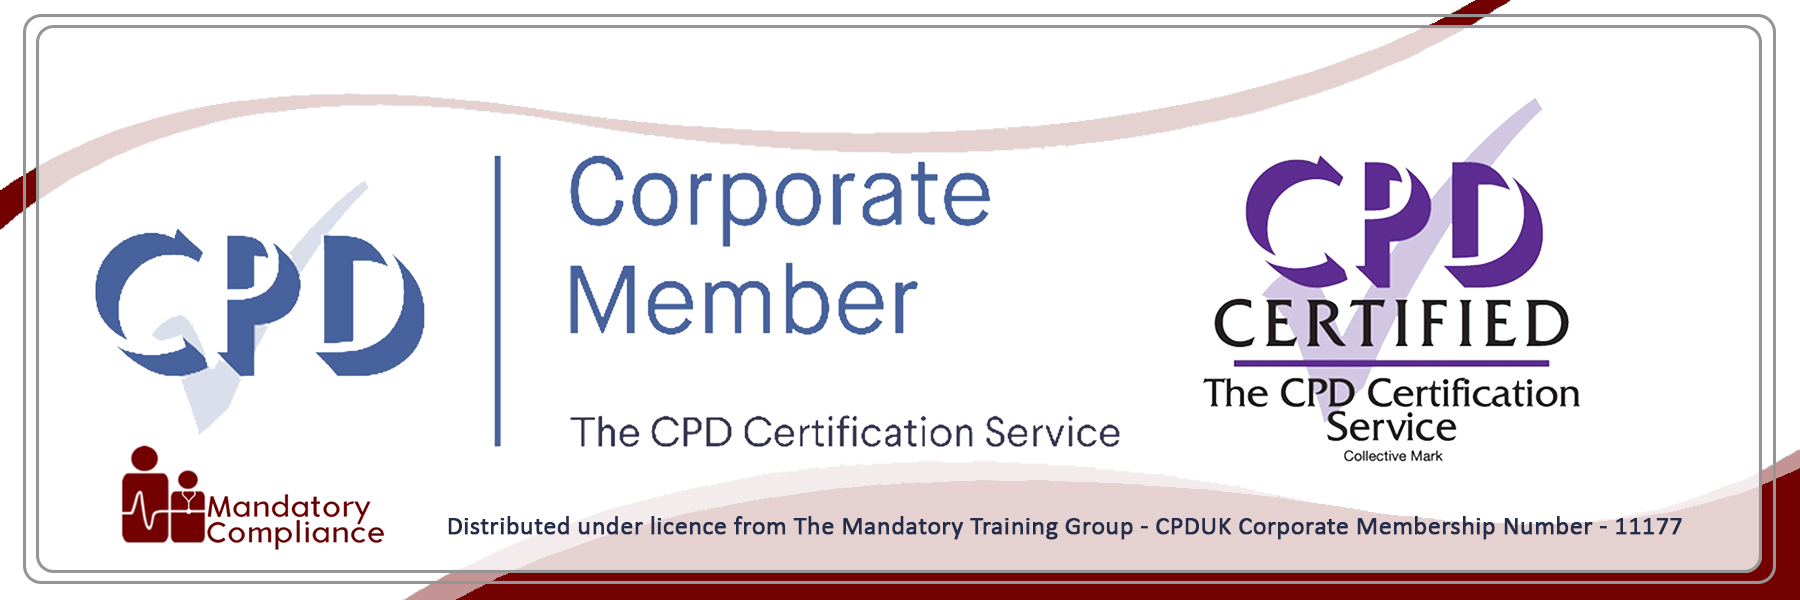 Care Certificate Standard 7 - Train the Trainer - The Mandatory Compliance UK -